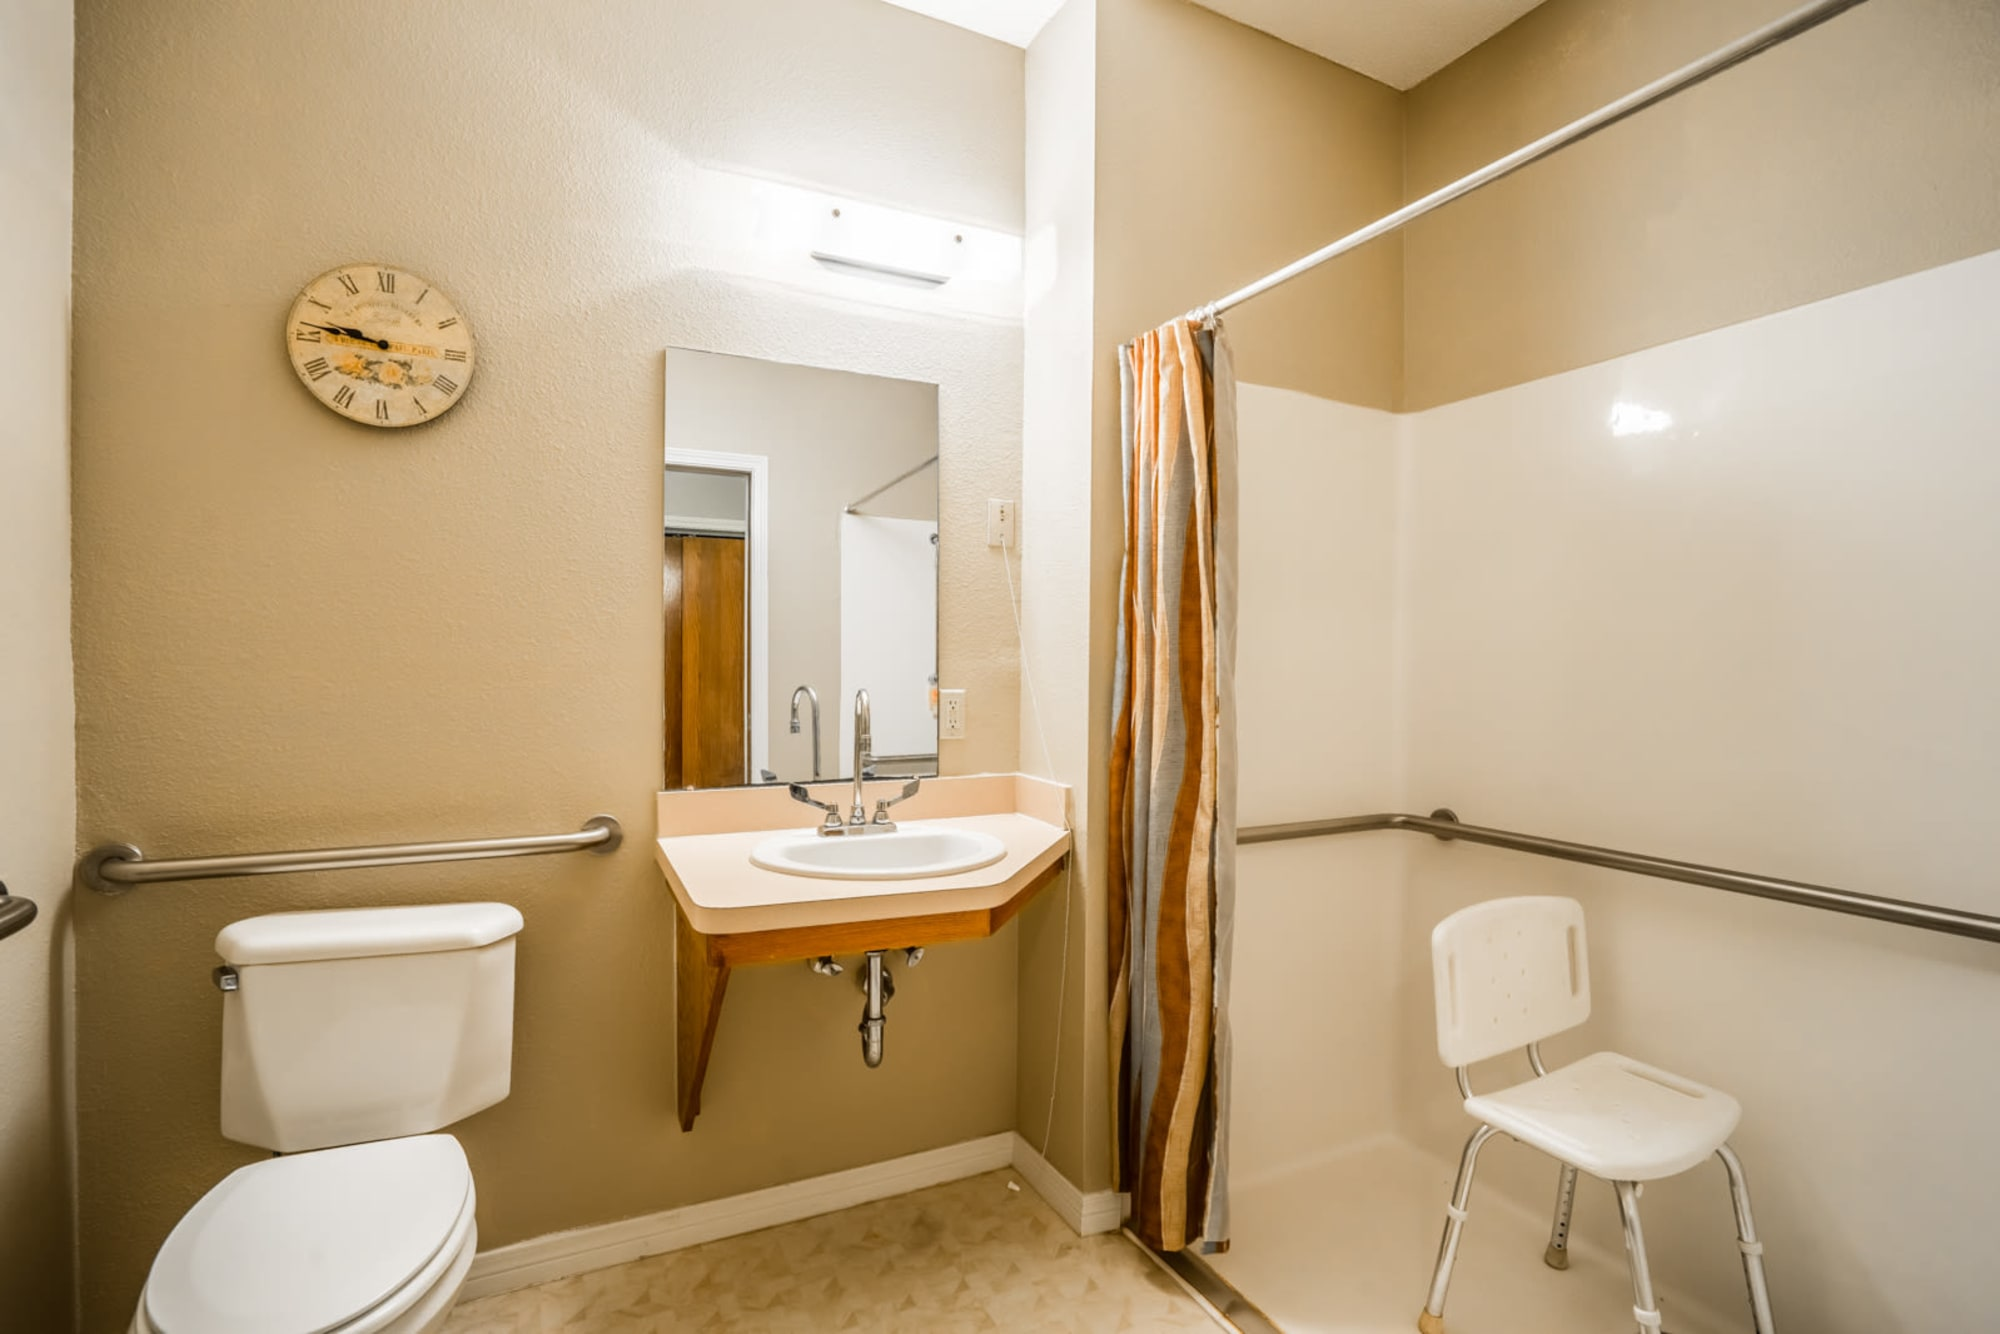 Easily mobile bathroom complete with chair shower at Saunders House in Wahoo, Nebraska